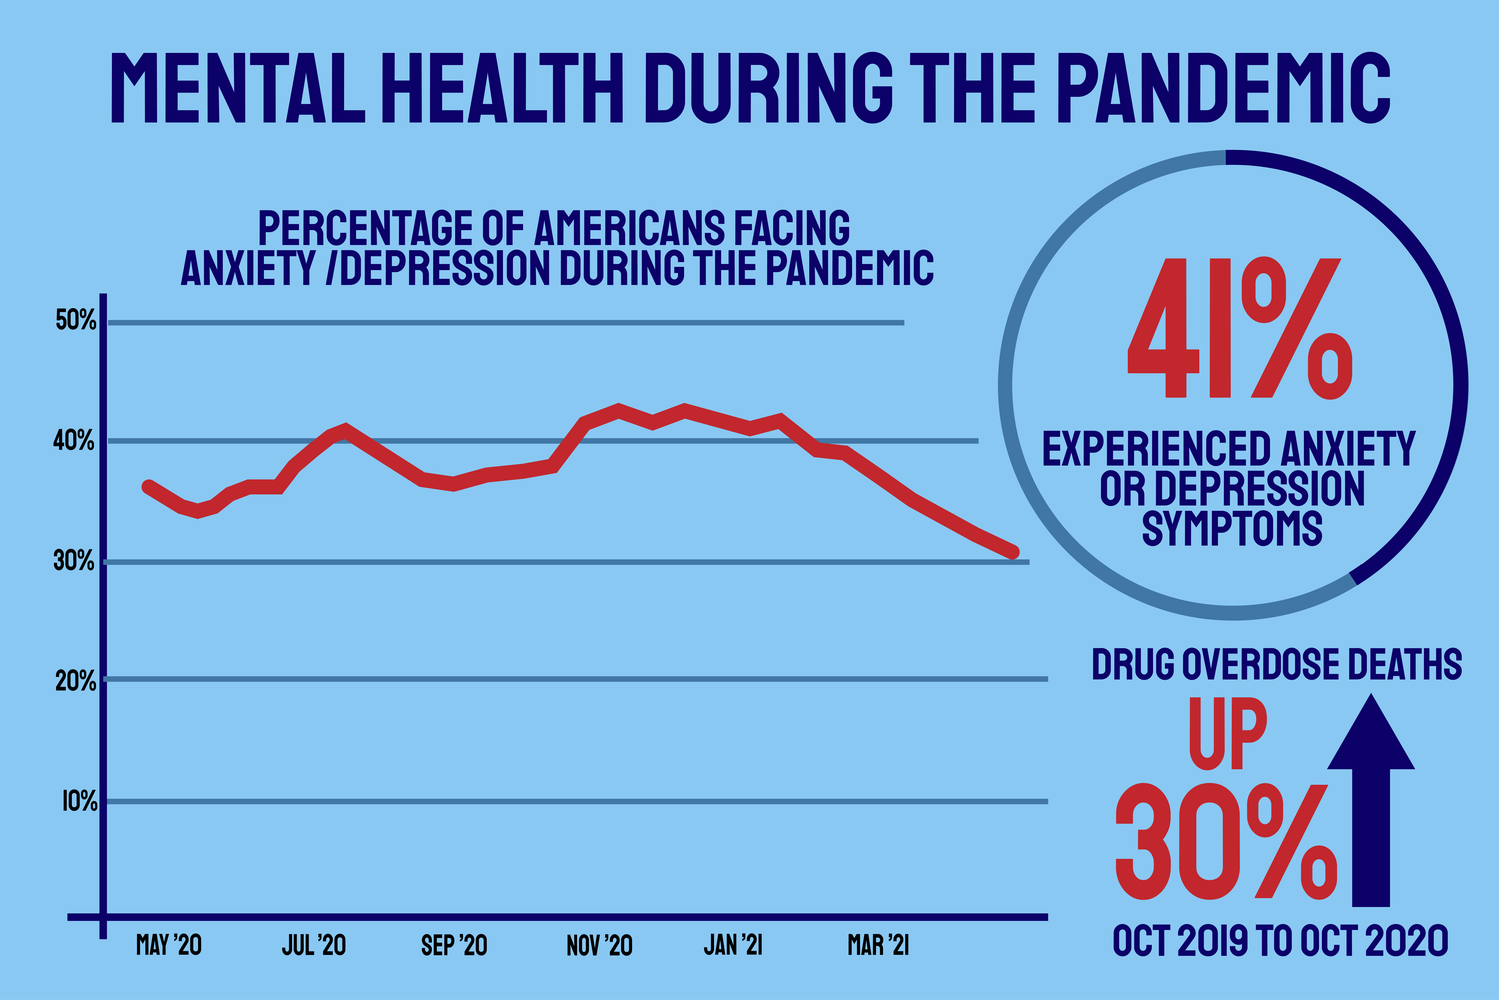 More than 41 percent of adults reported experiencing depression or anxiety during the past year.